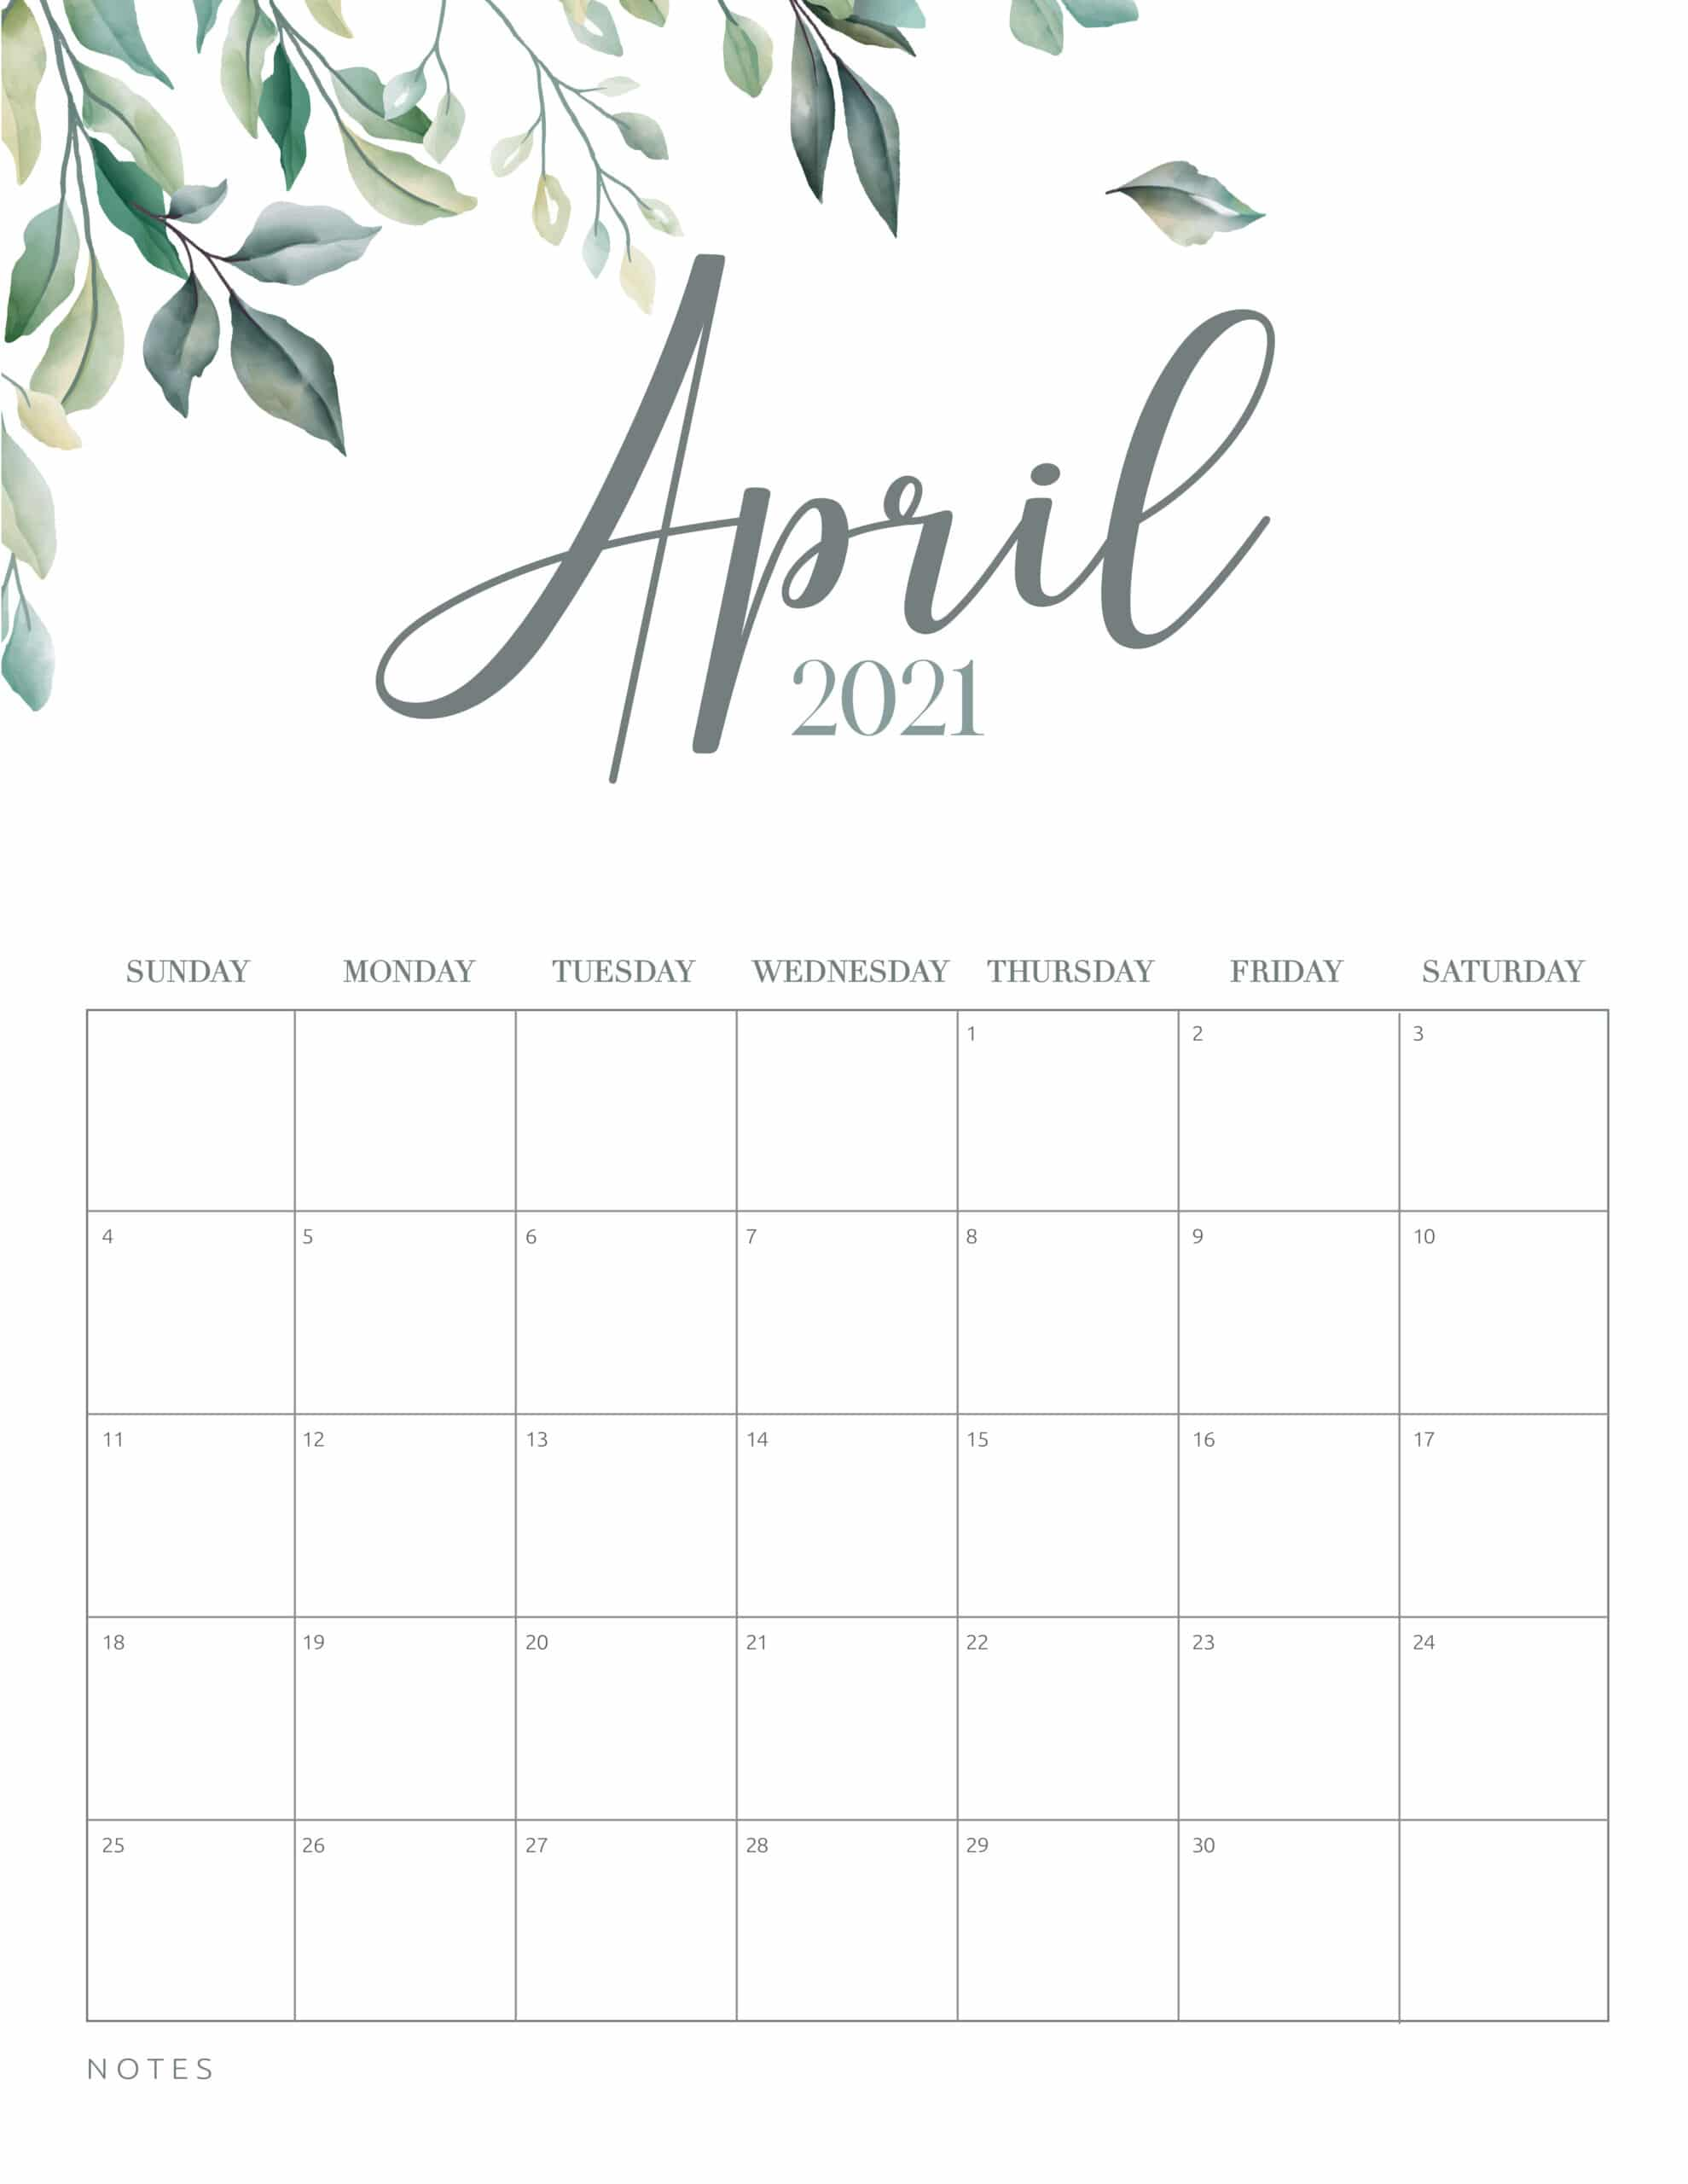 Minimal Botanical 2021 Free Printable Calendar - World of ...